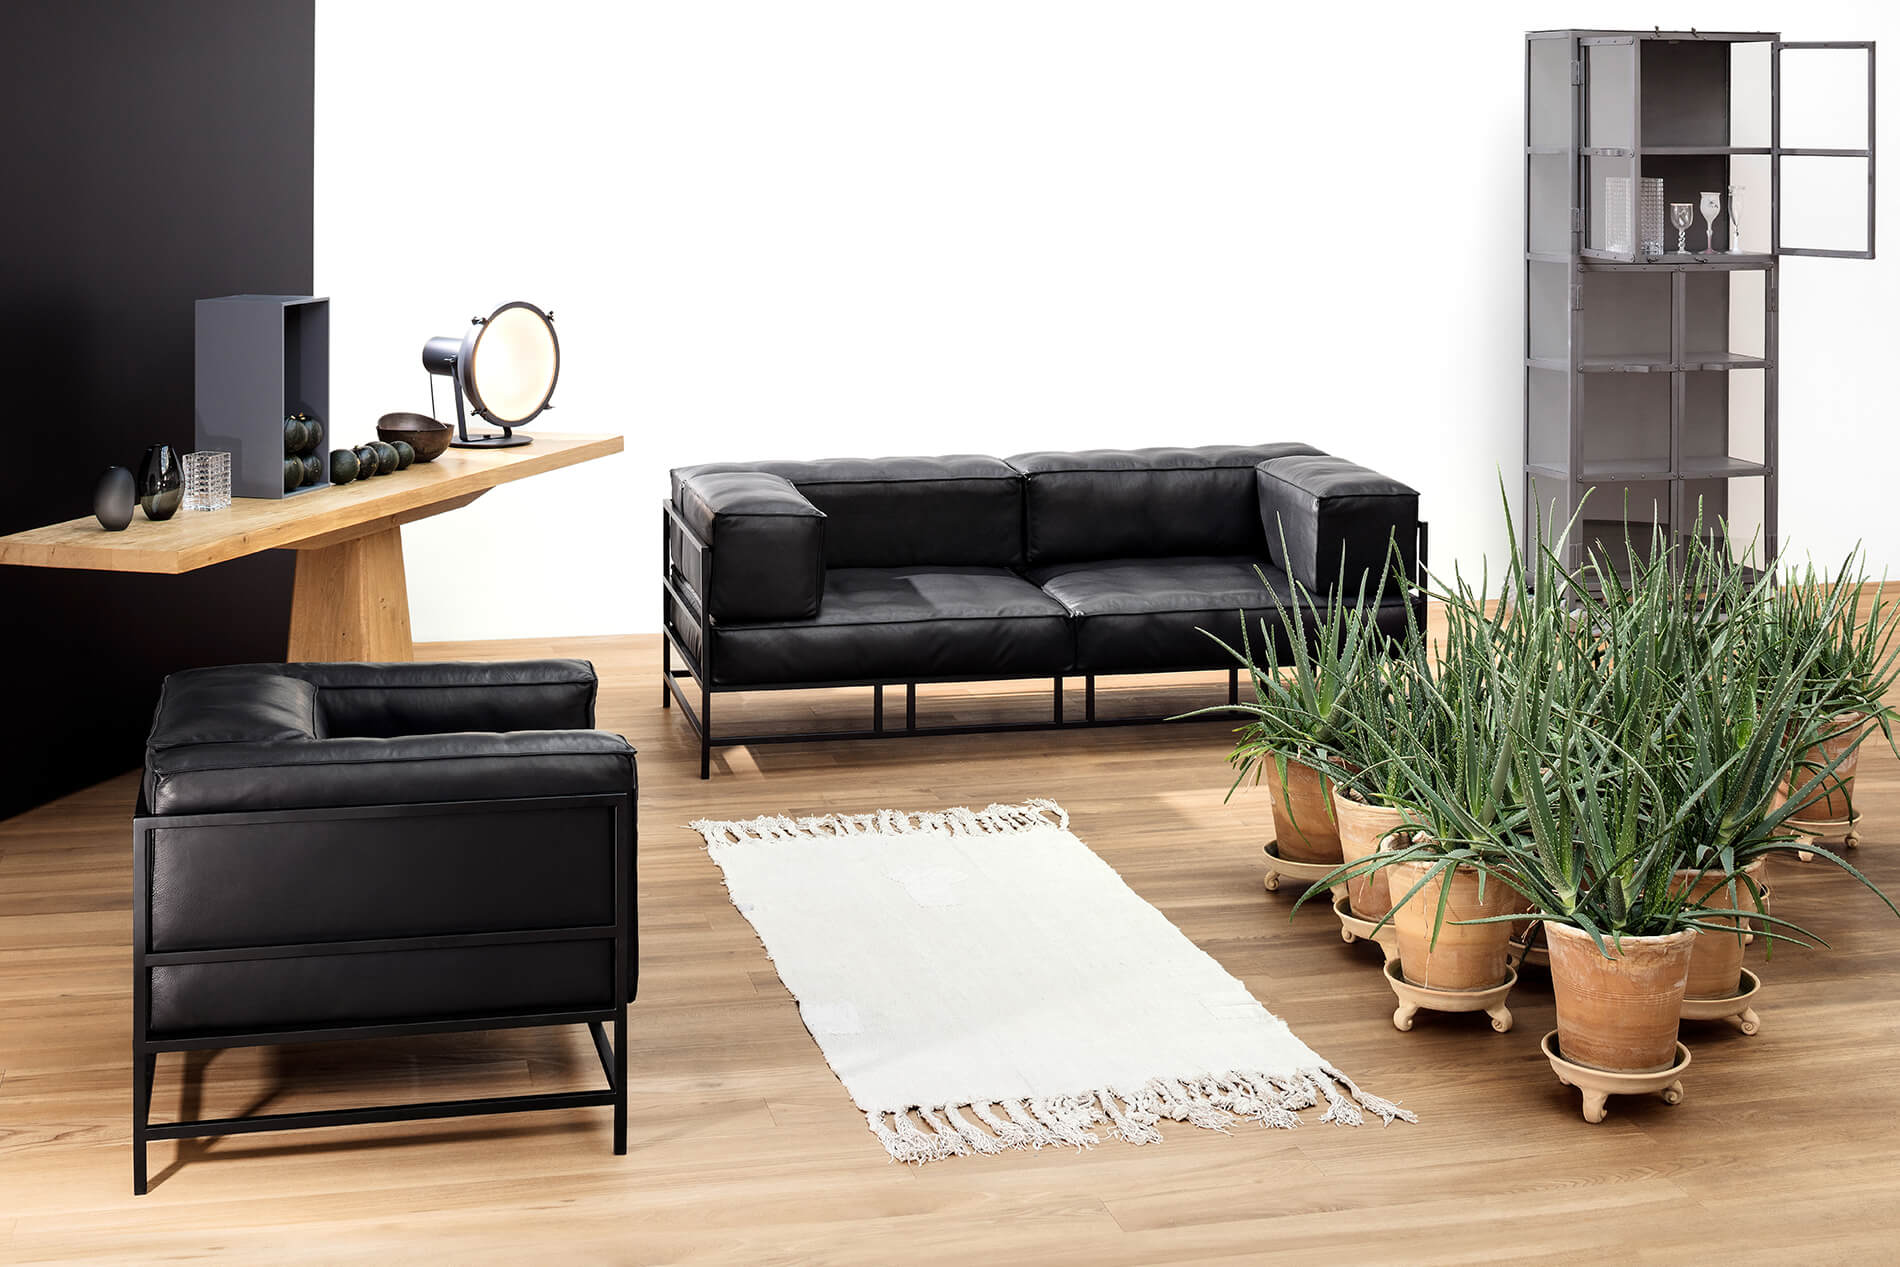 schlafsofas und funktionssofas online kaufen sofa couture. Black Bedroom Furniture Sets. Home Design Ideas